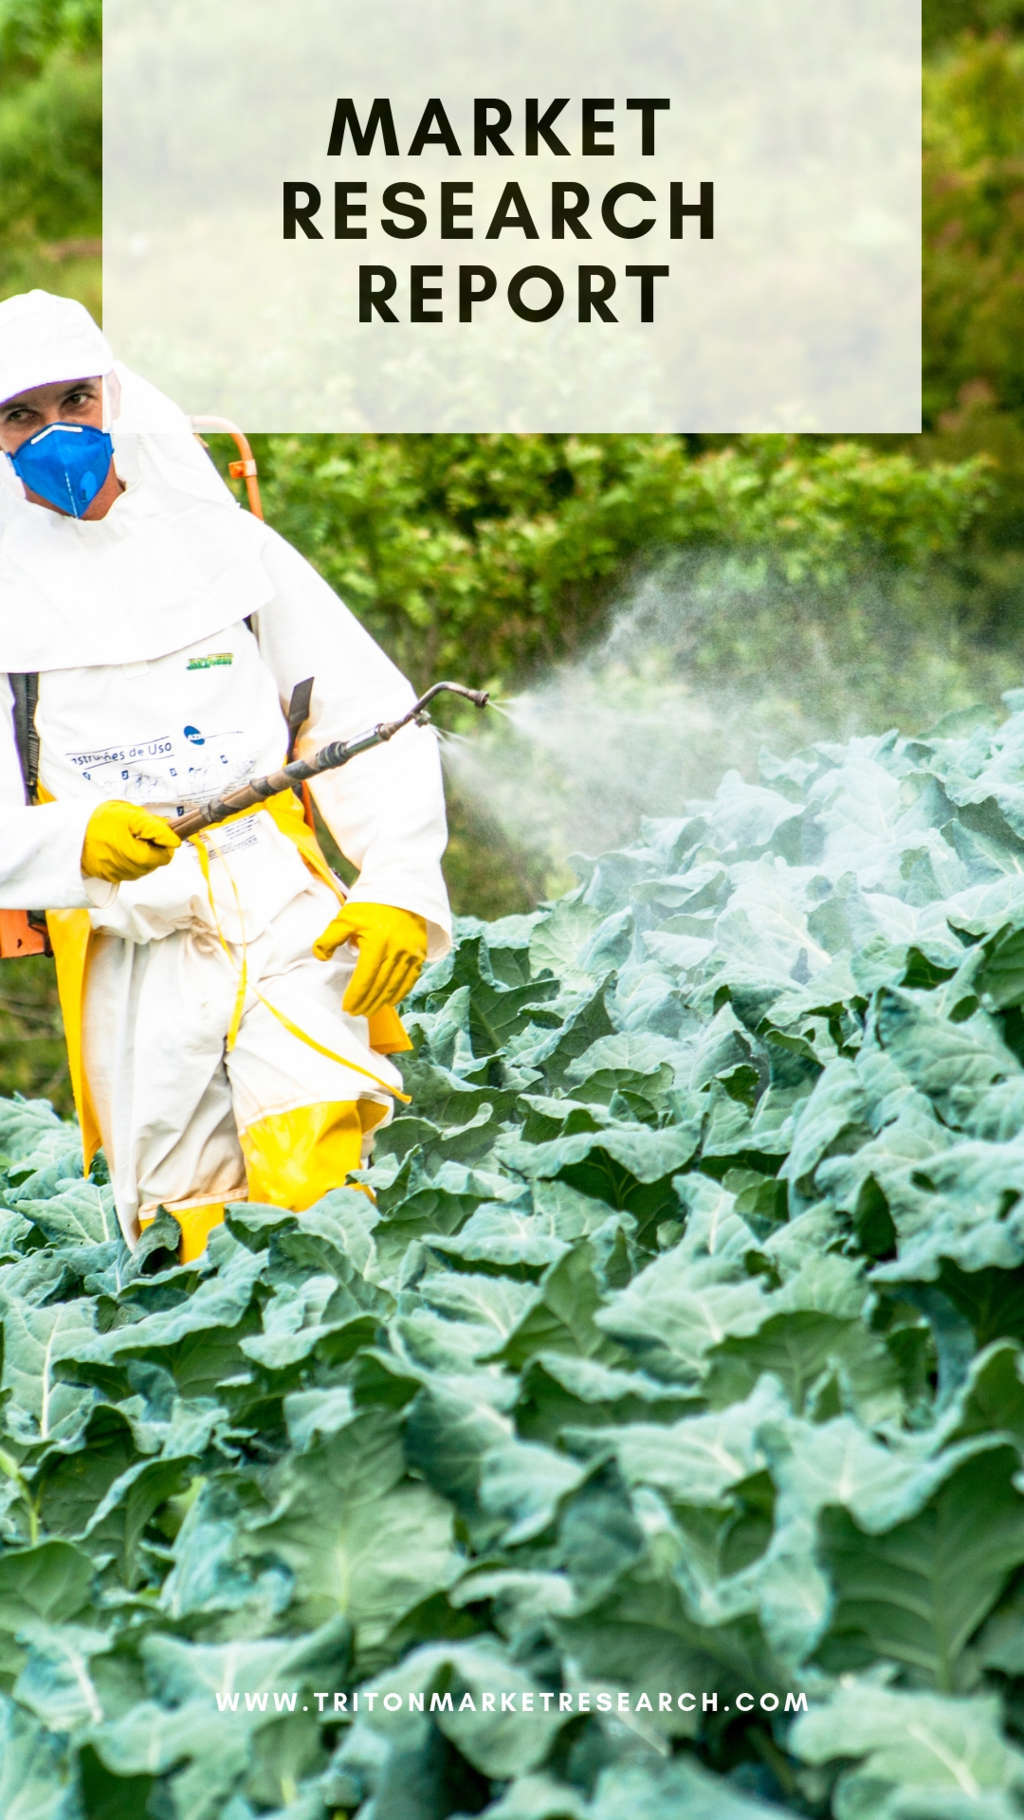 ASIA-PACIFIC BIOPESTICIDES MARKET 2019-2027